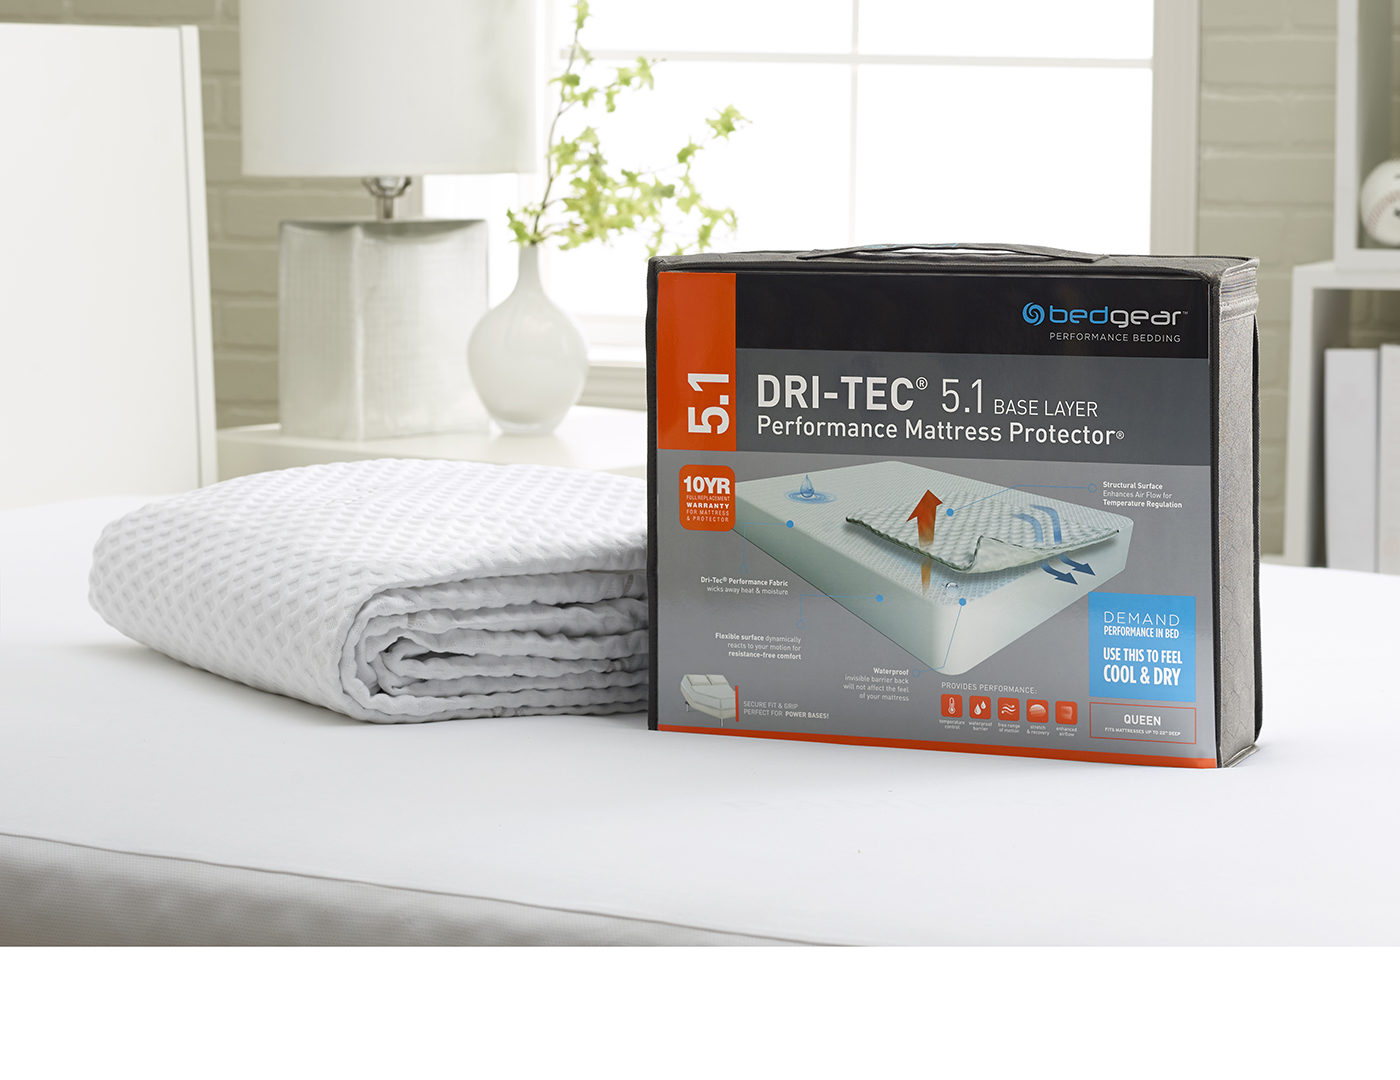 bedgear 5.1 Dri-Tec Moisture Wicking Queen Mattress Protector